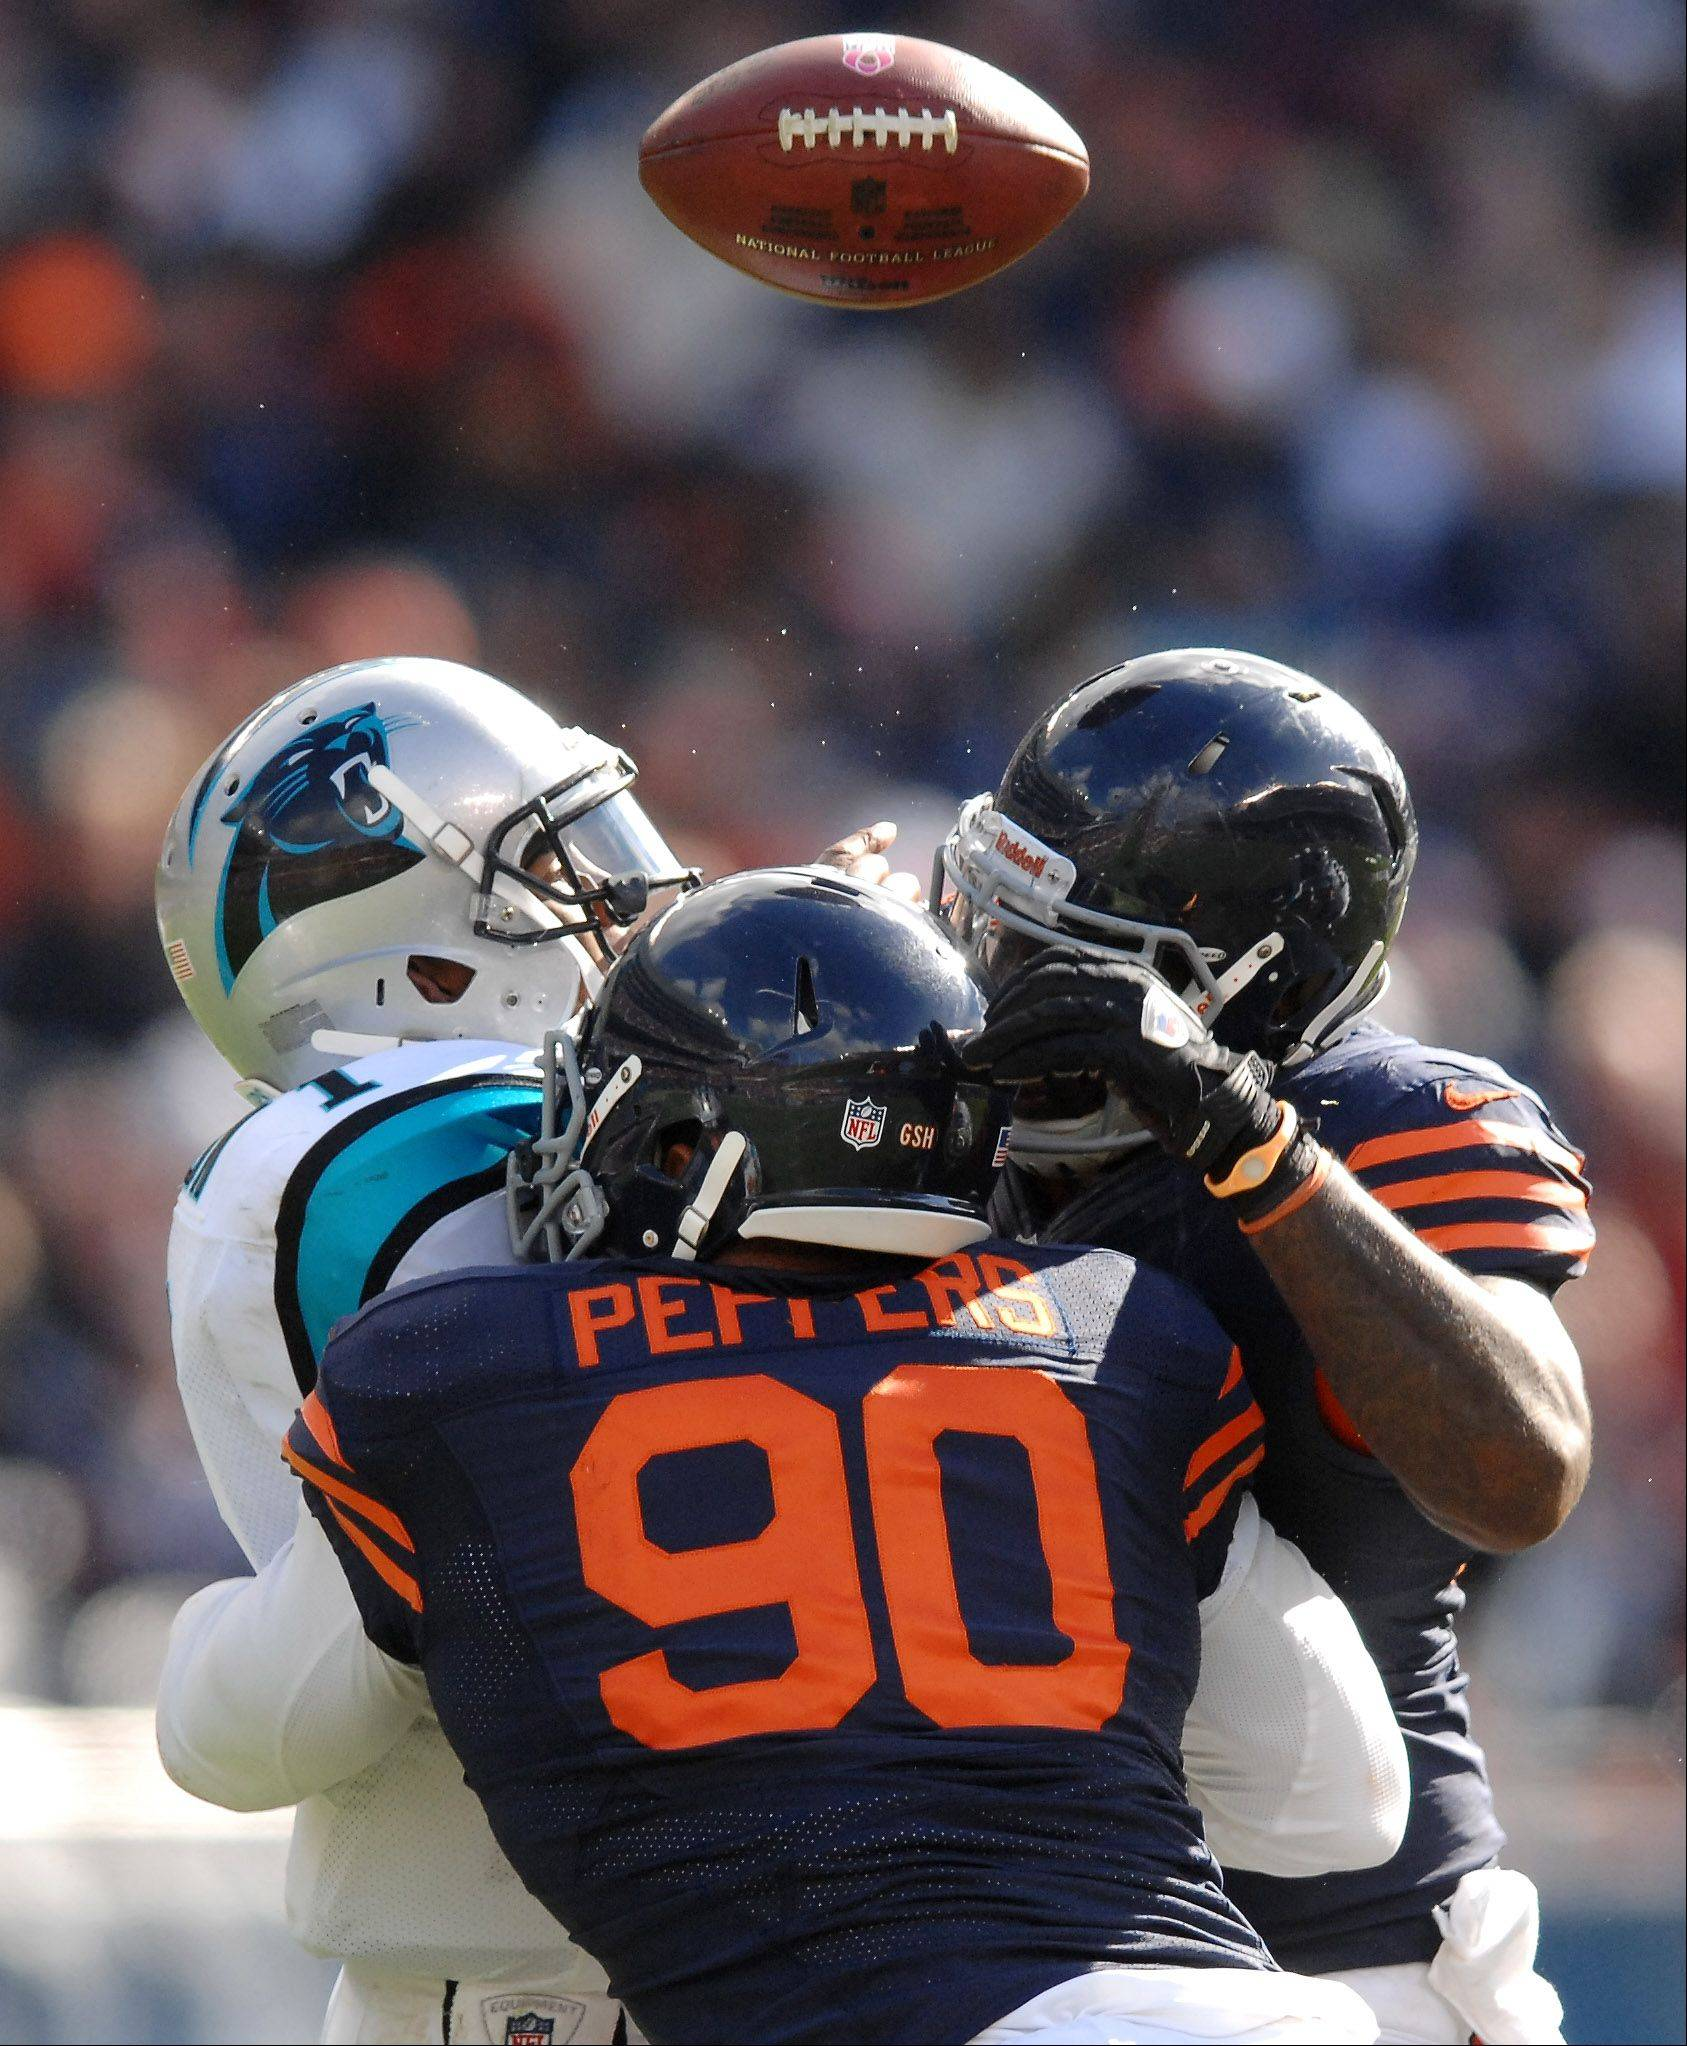 Carolina Panthers quarterback Cam Newton (1) fumbles into the air as he is sacked by Chicago's Julius Peppers and Henry Melton during Sunday's game at Soldier Field in Chicago. The Panthers recovered.